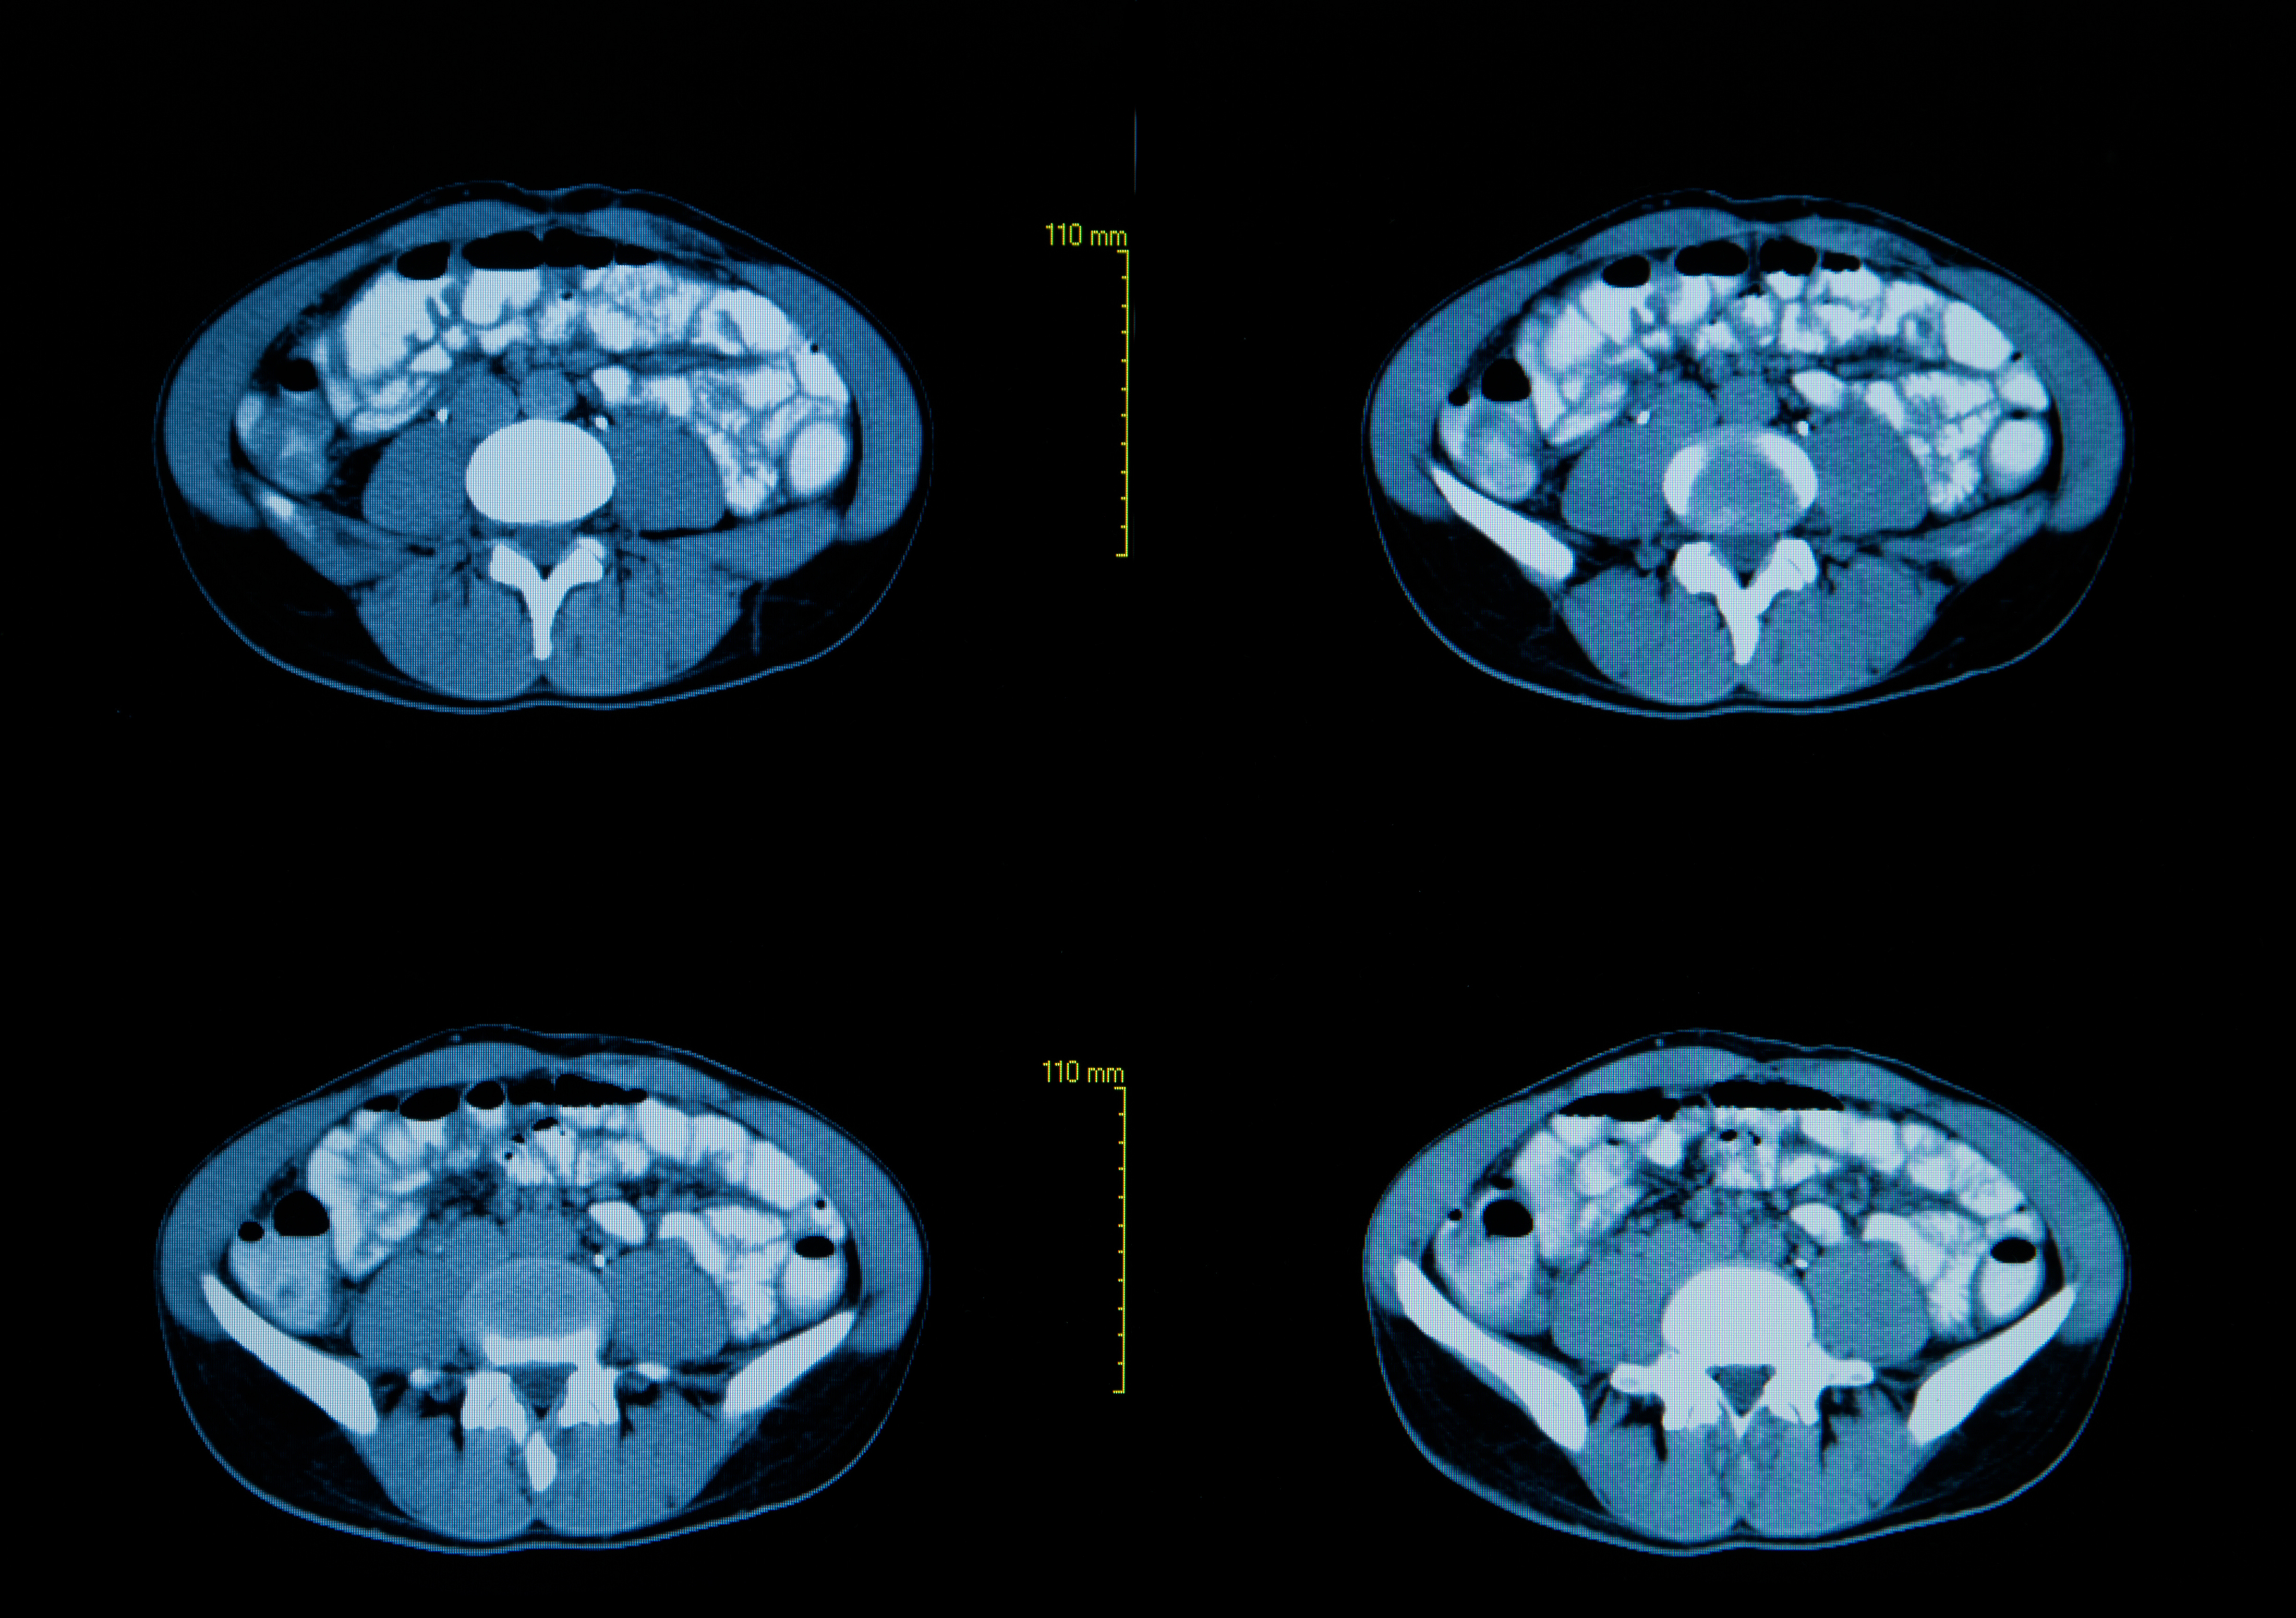 Study Suggests High-Resolution Computed Tomography as a Predictor of Lung Function in Systemic Sclerosis Patients